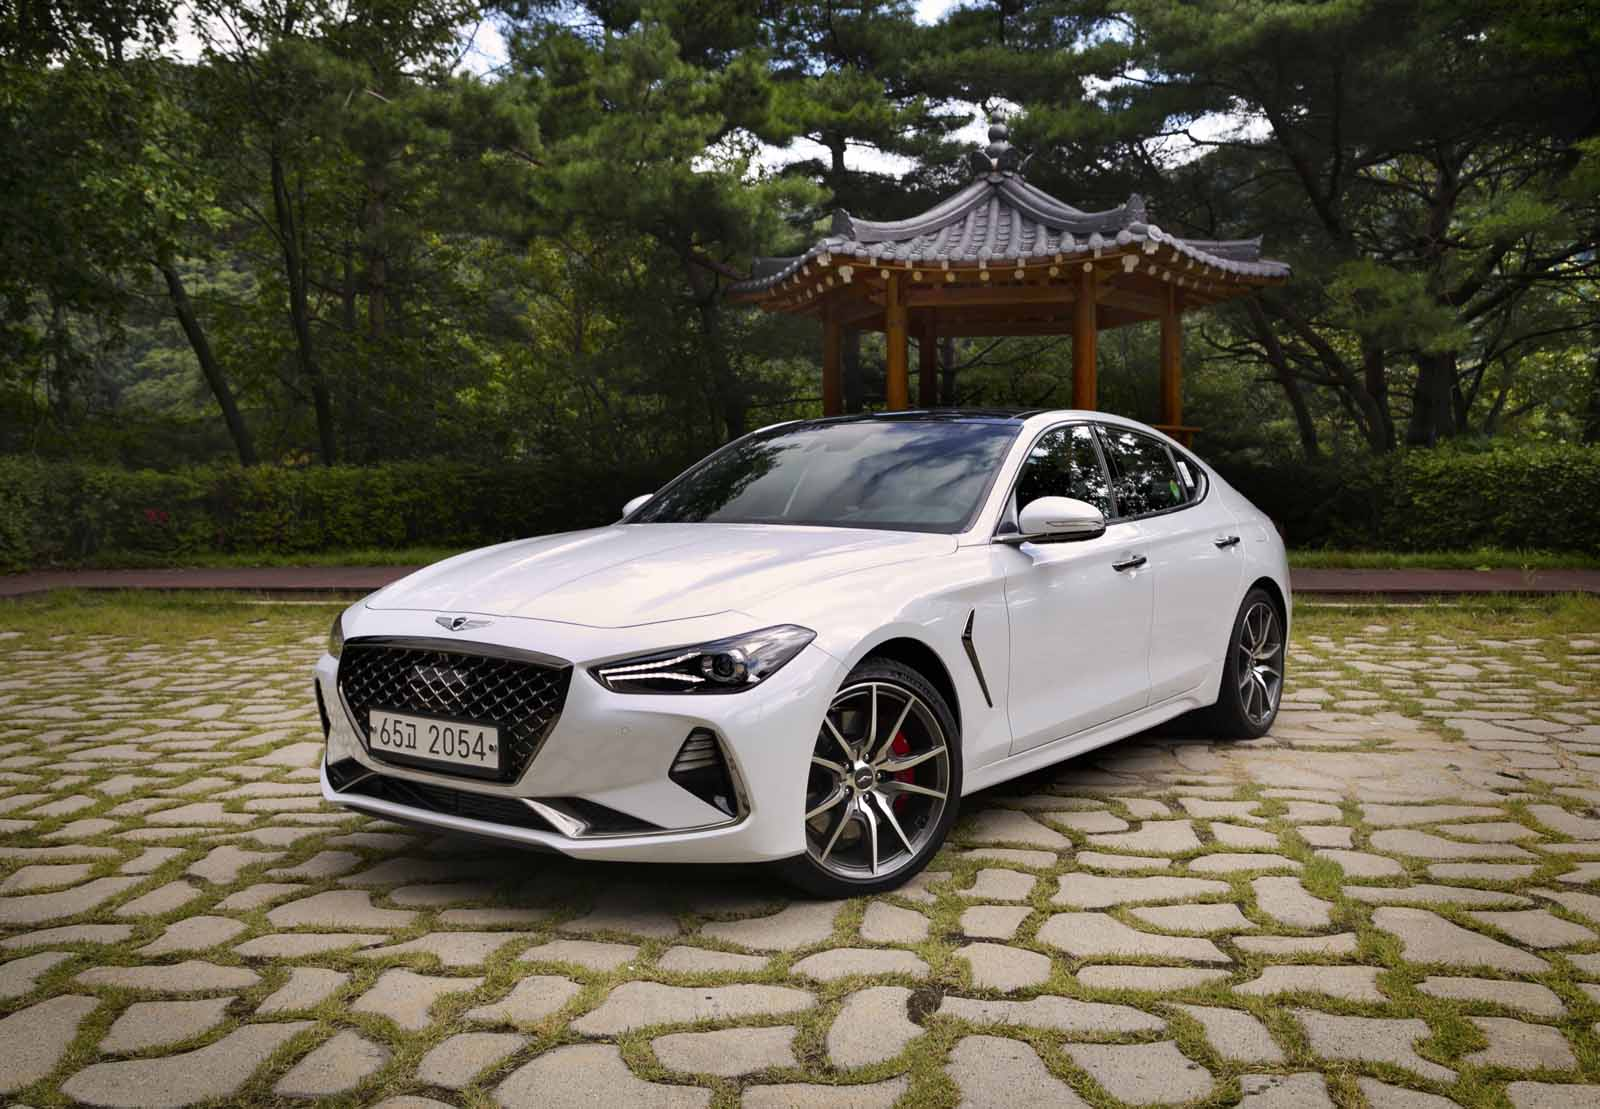 Mazda New Coupe >> 2018 Genesis G70 Review and First Drive - AutoGuide.com